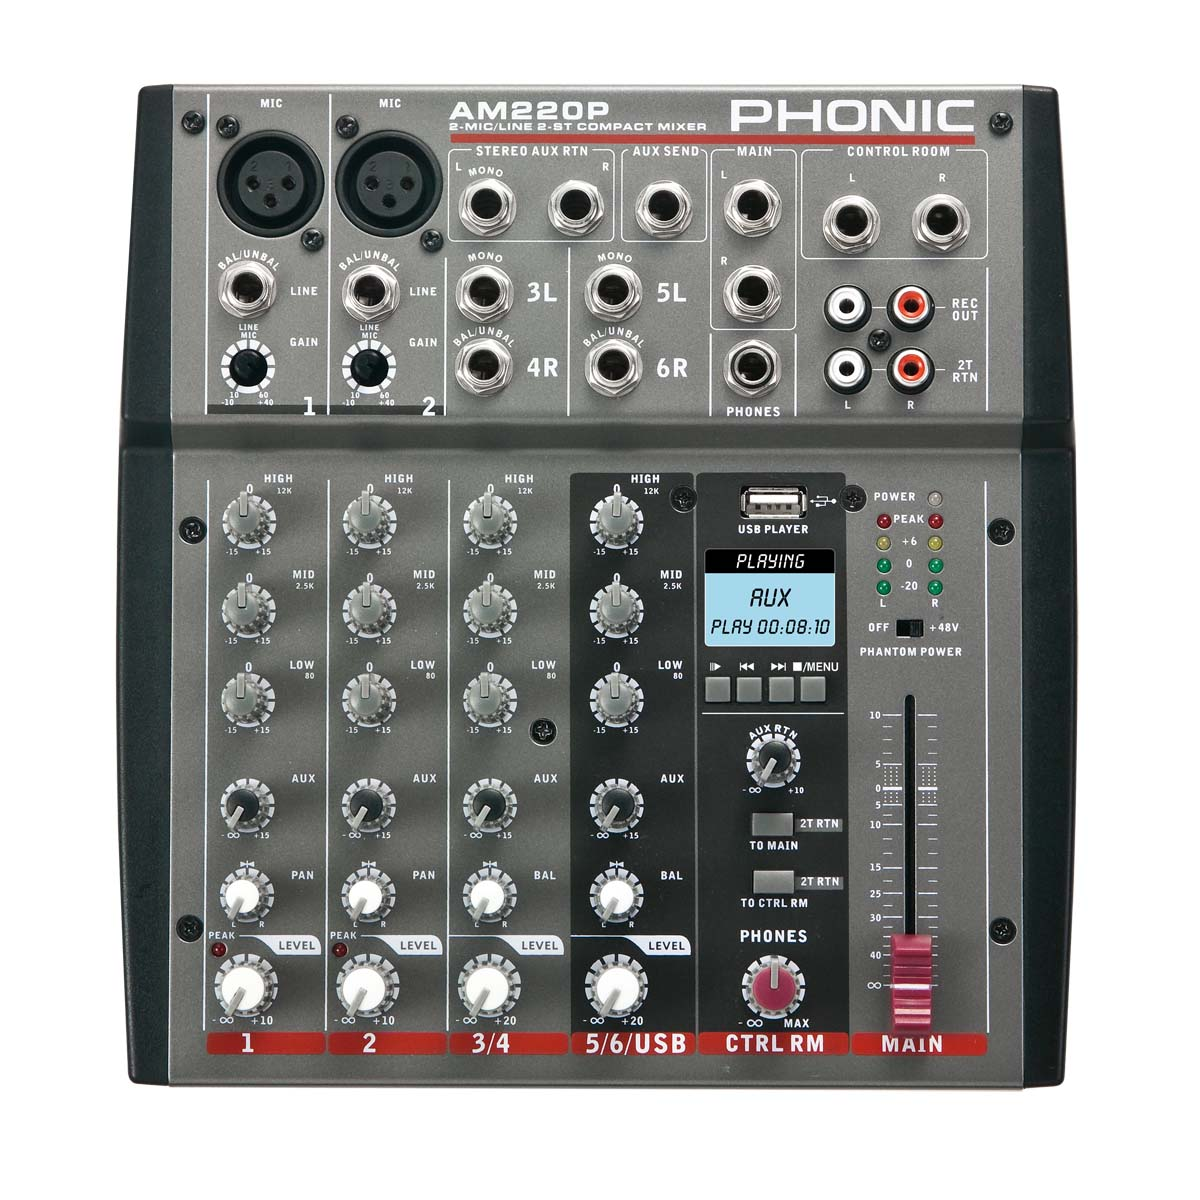 Phonic AM220P 2-Mic/Line 2-Stereo Input Compact Mixer with USB Player